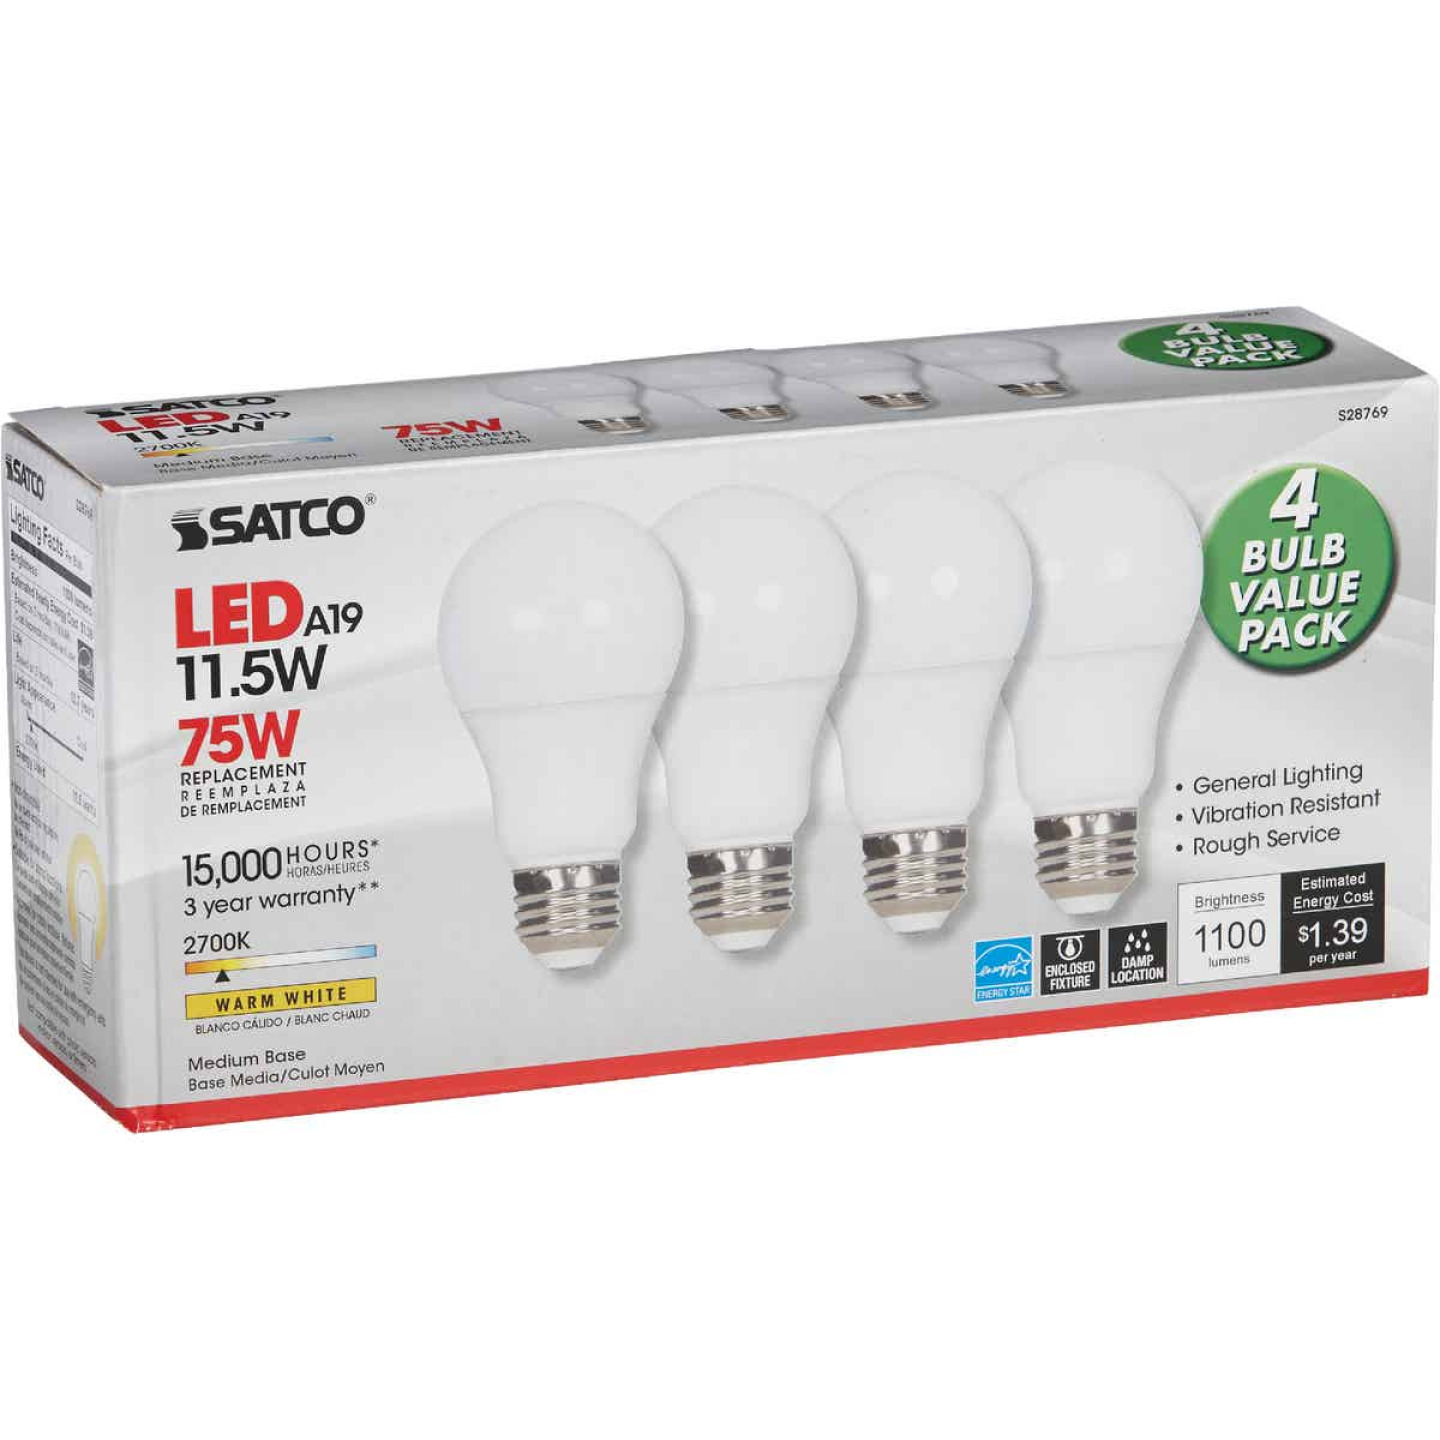 Satco 75W Equivalent Warm White A19 Medium LED Light Bulb (4-Pack) Image 4